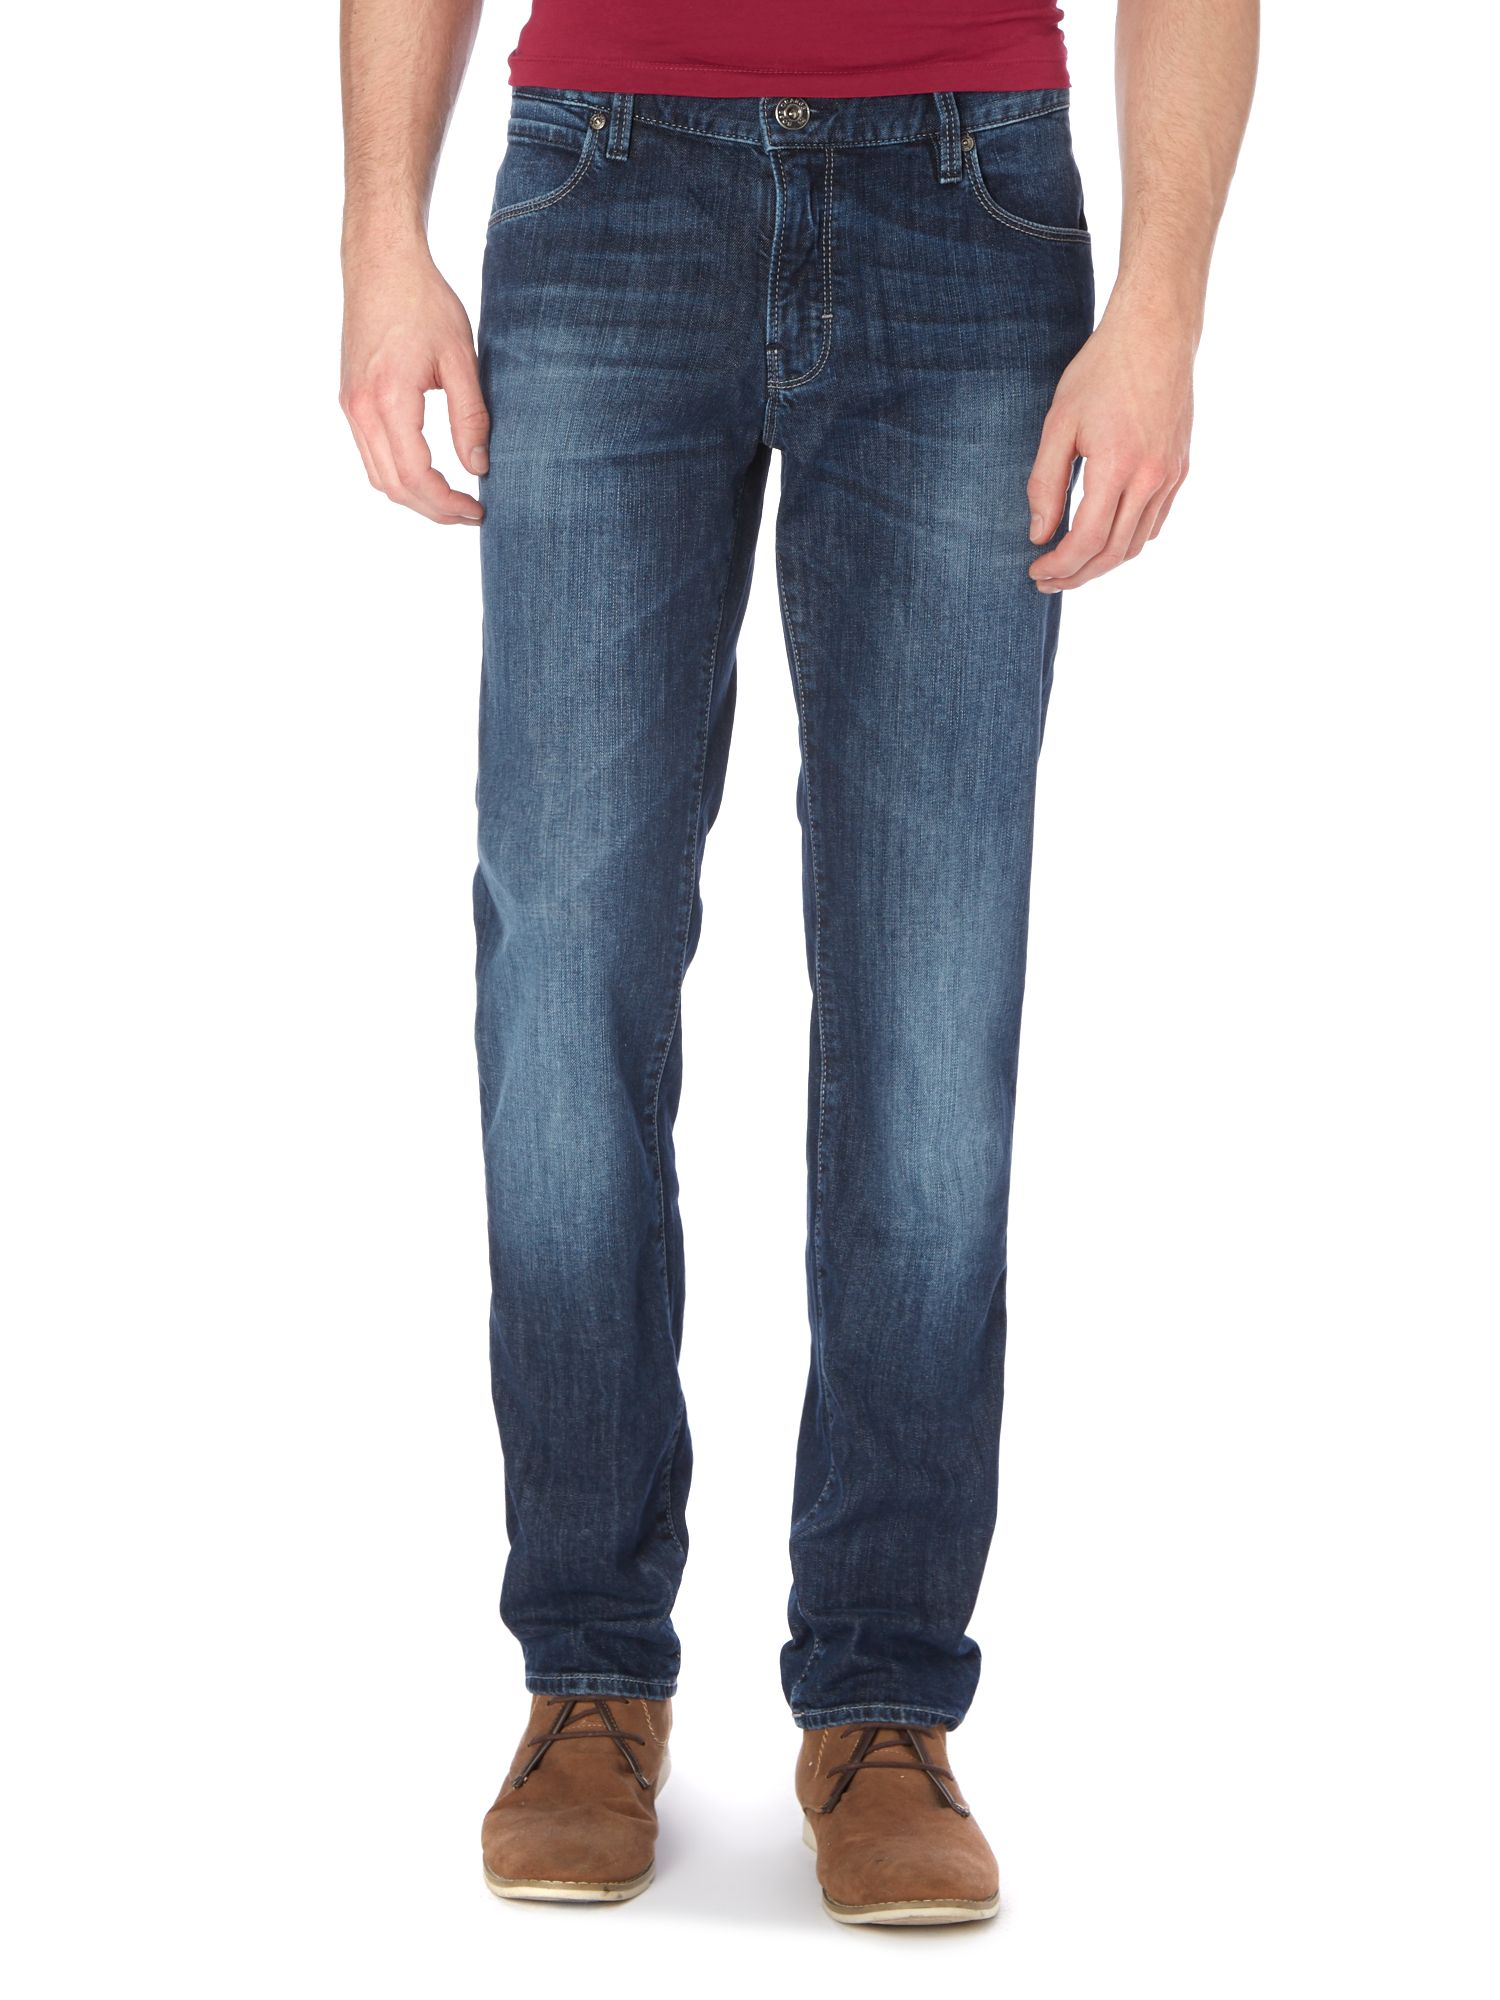 Orange 63 mid wash slim fit jean